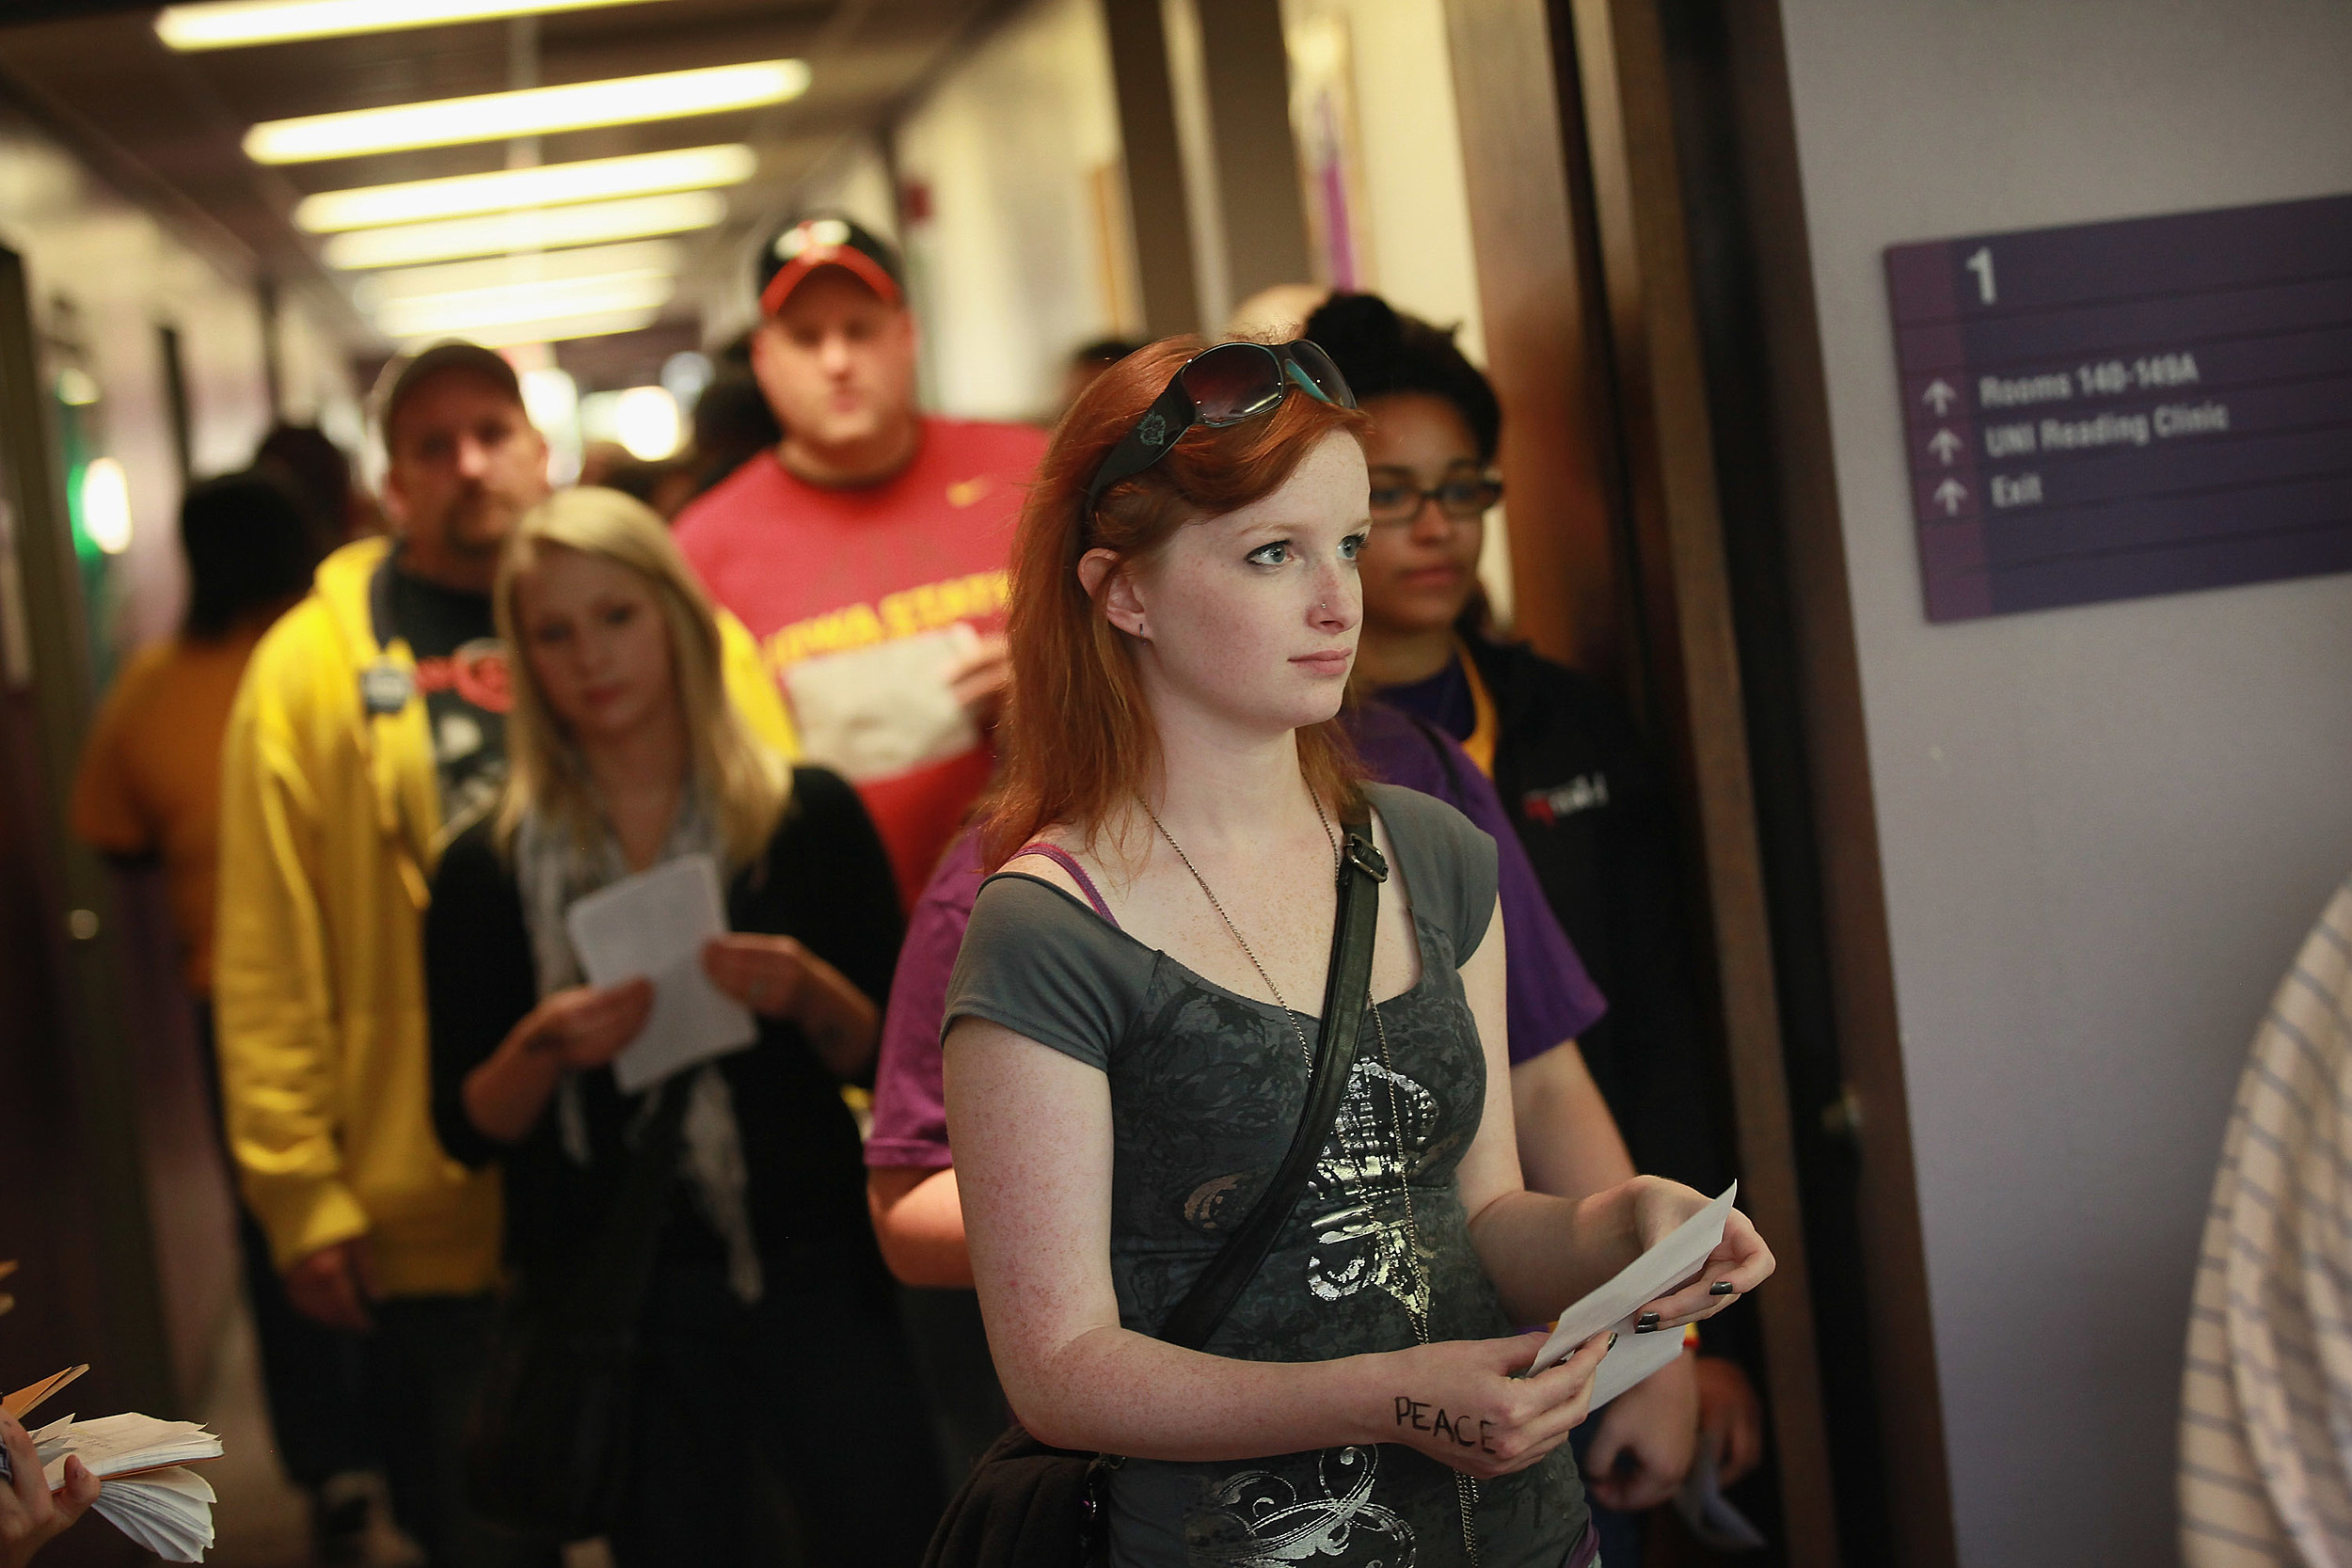 College student may have to choose gun over school